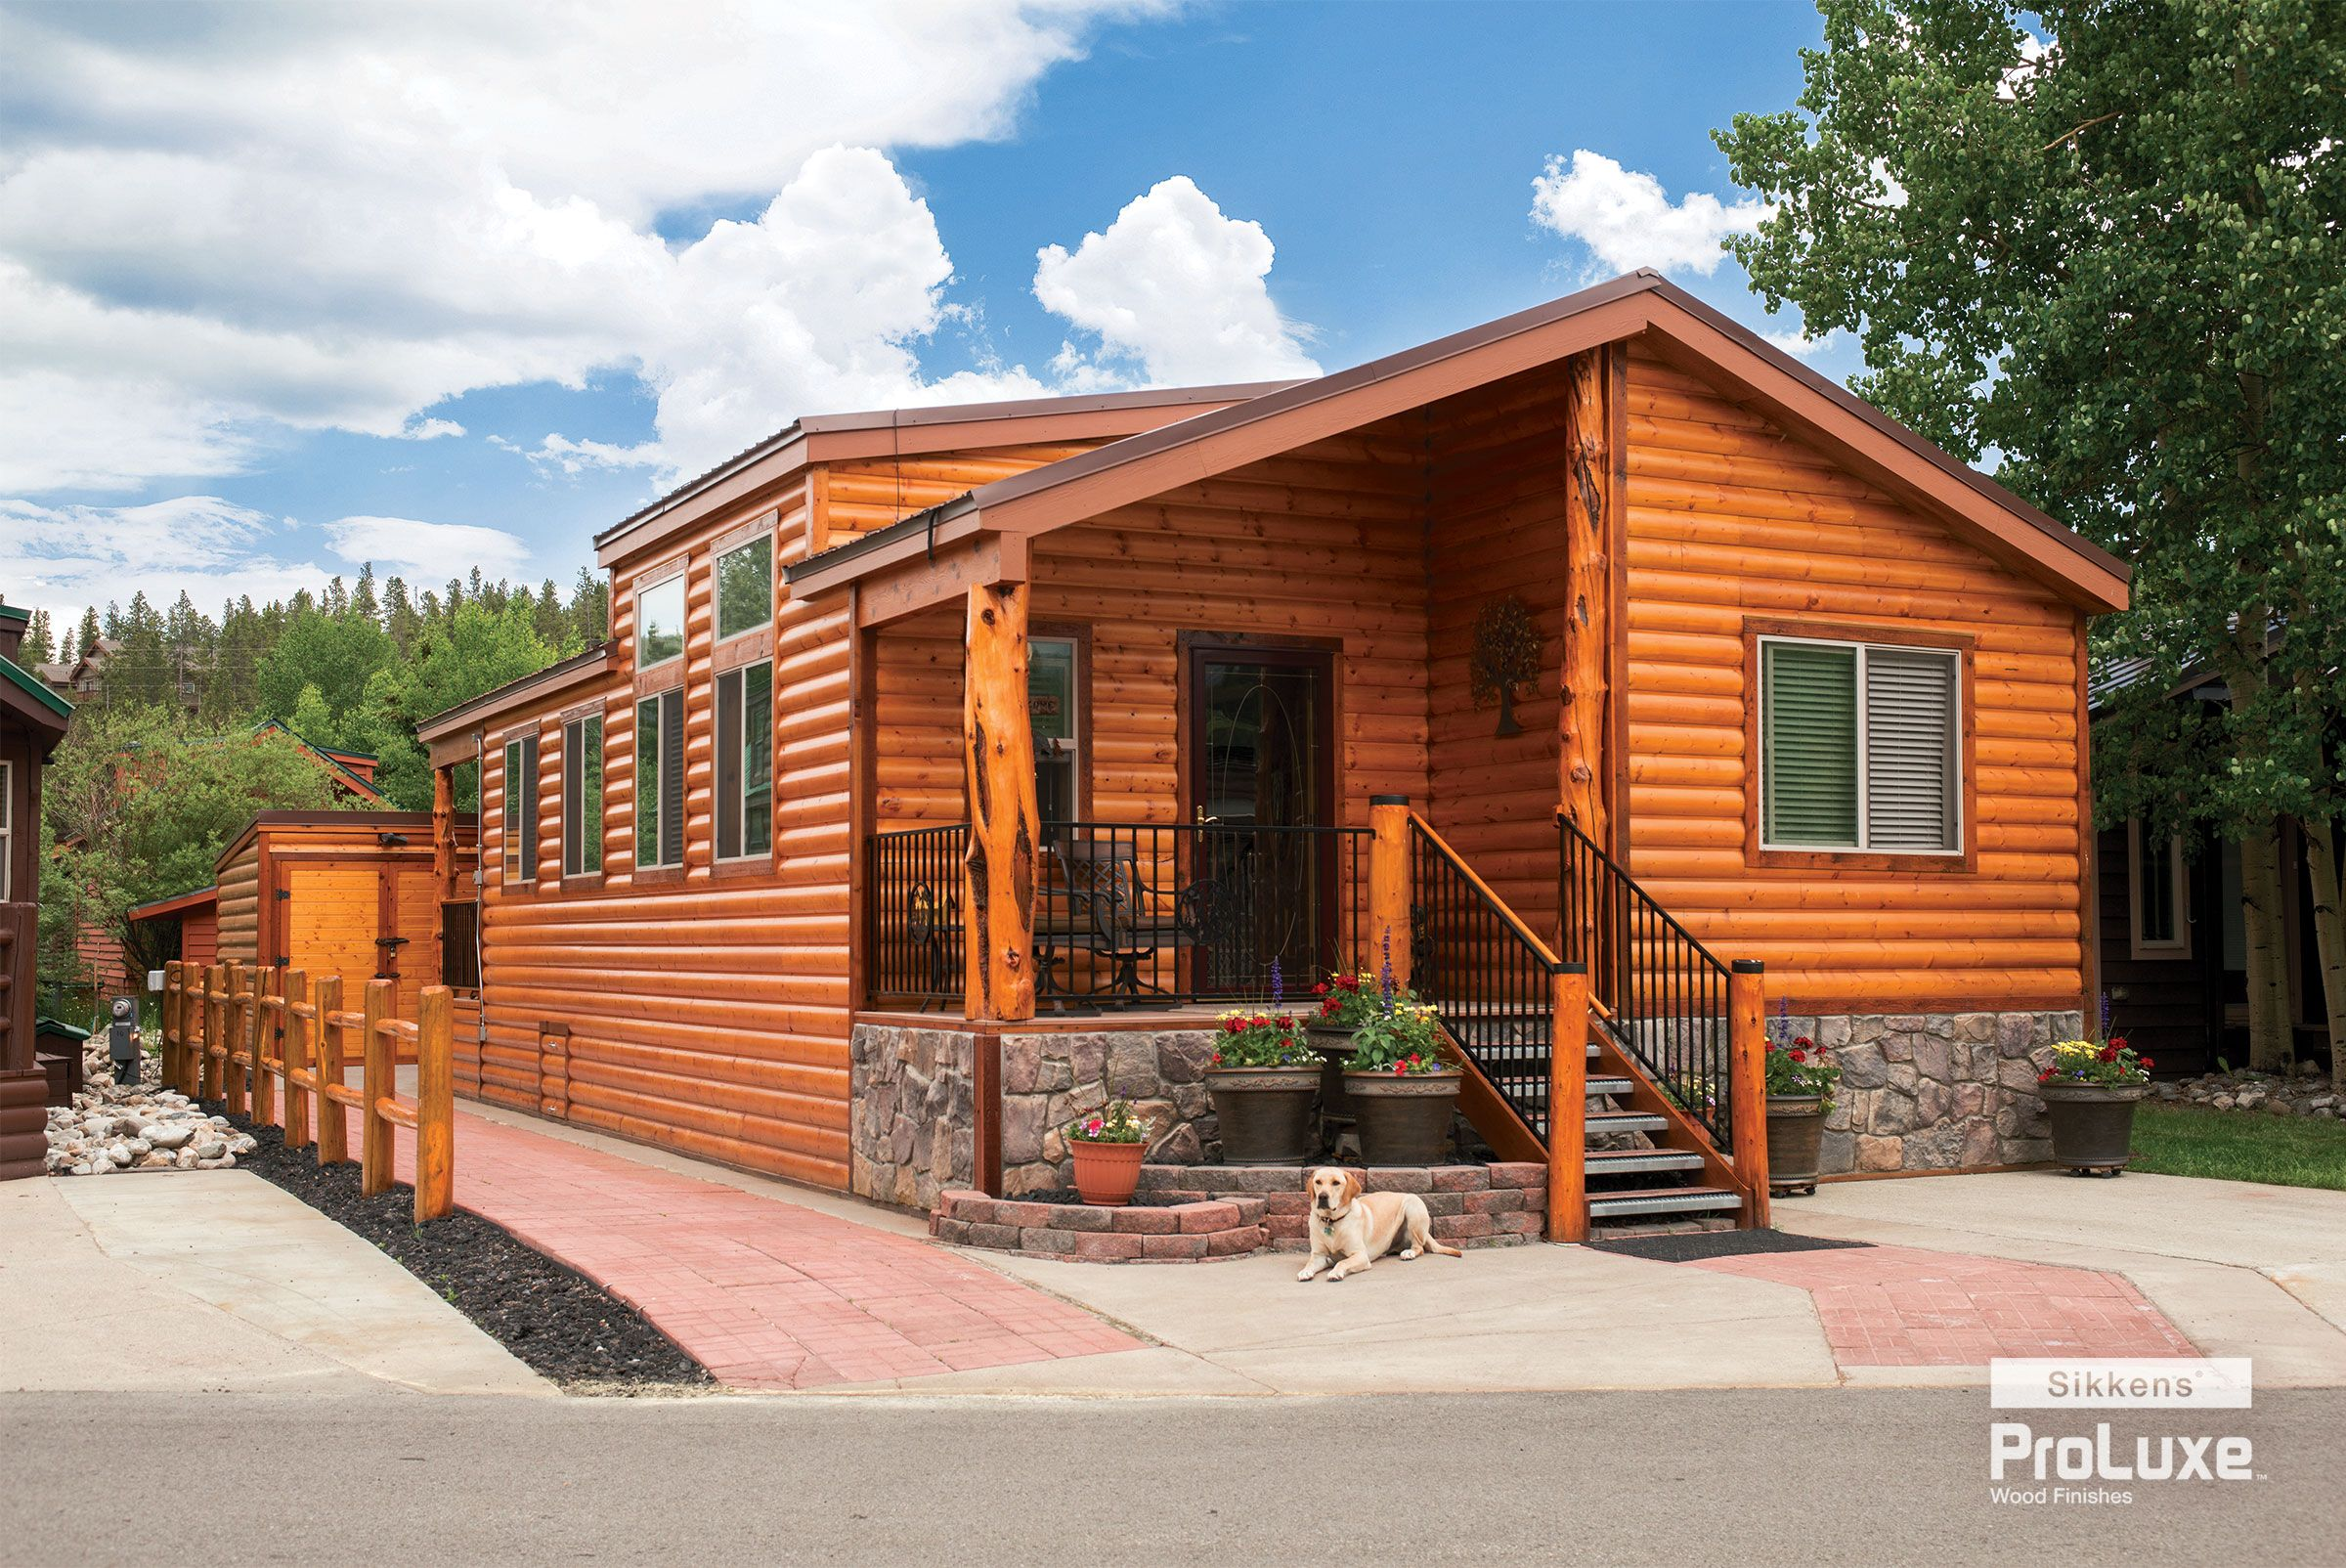 This Stunning Log Cabin Gets Its Luster From Its Exterior Wood Finish U2014  Sikkens® ProLuxe™ Cetol® Log U0026 Siding In Natural. The Cabin Is Located On  Tiger Run ...